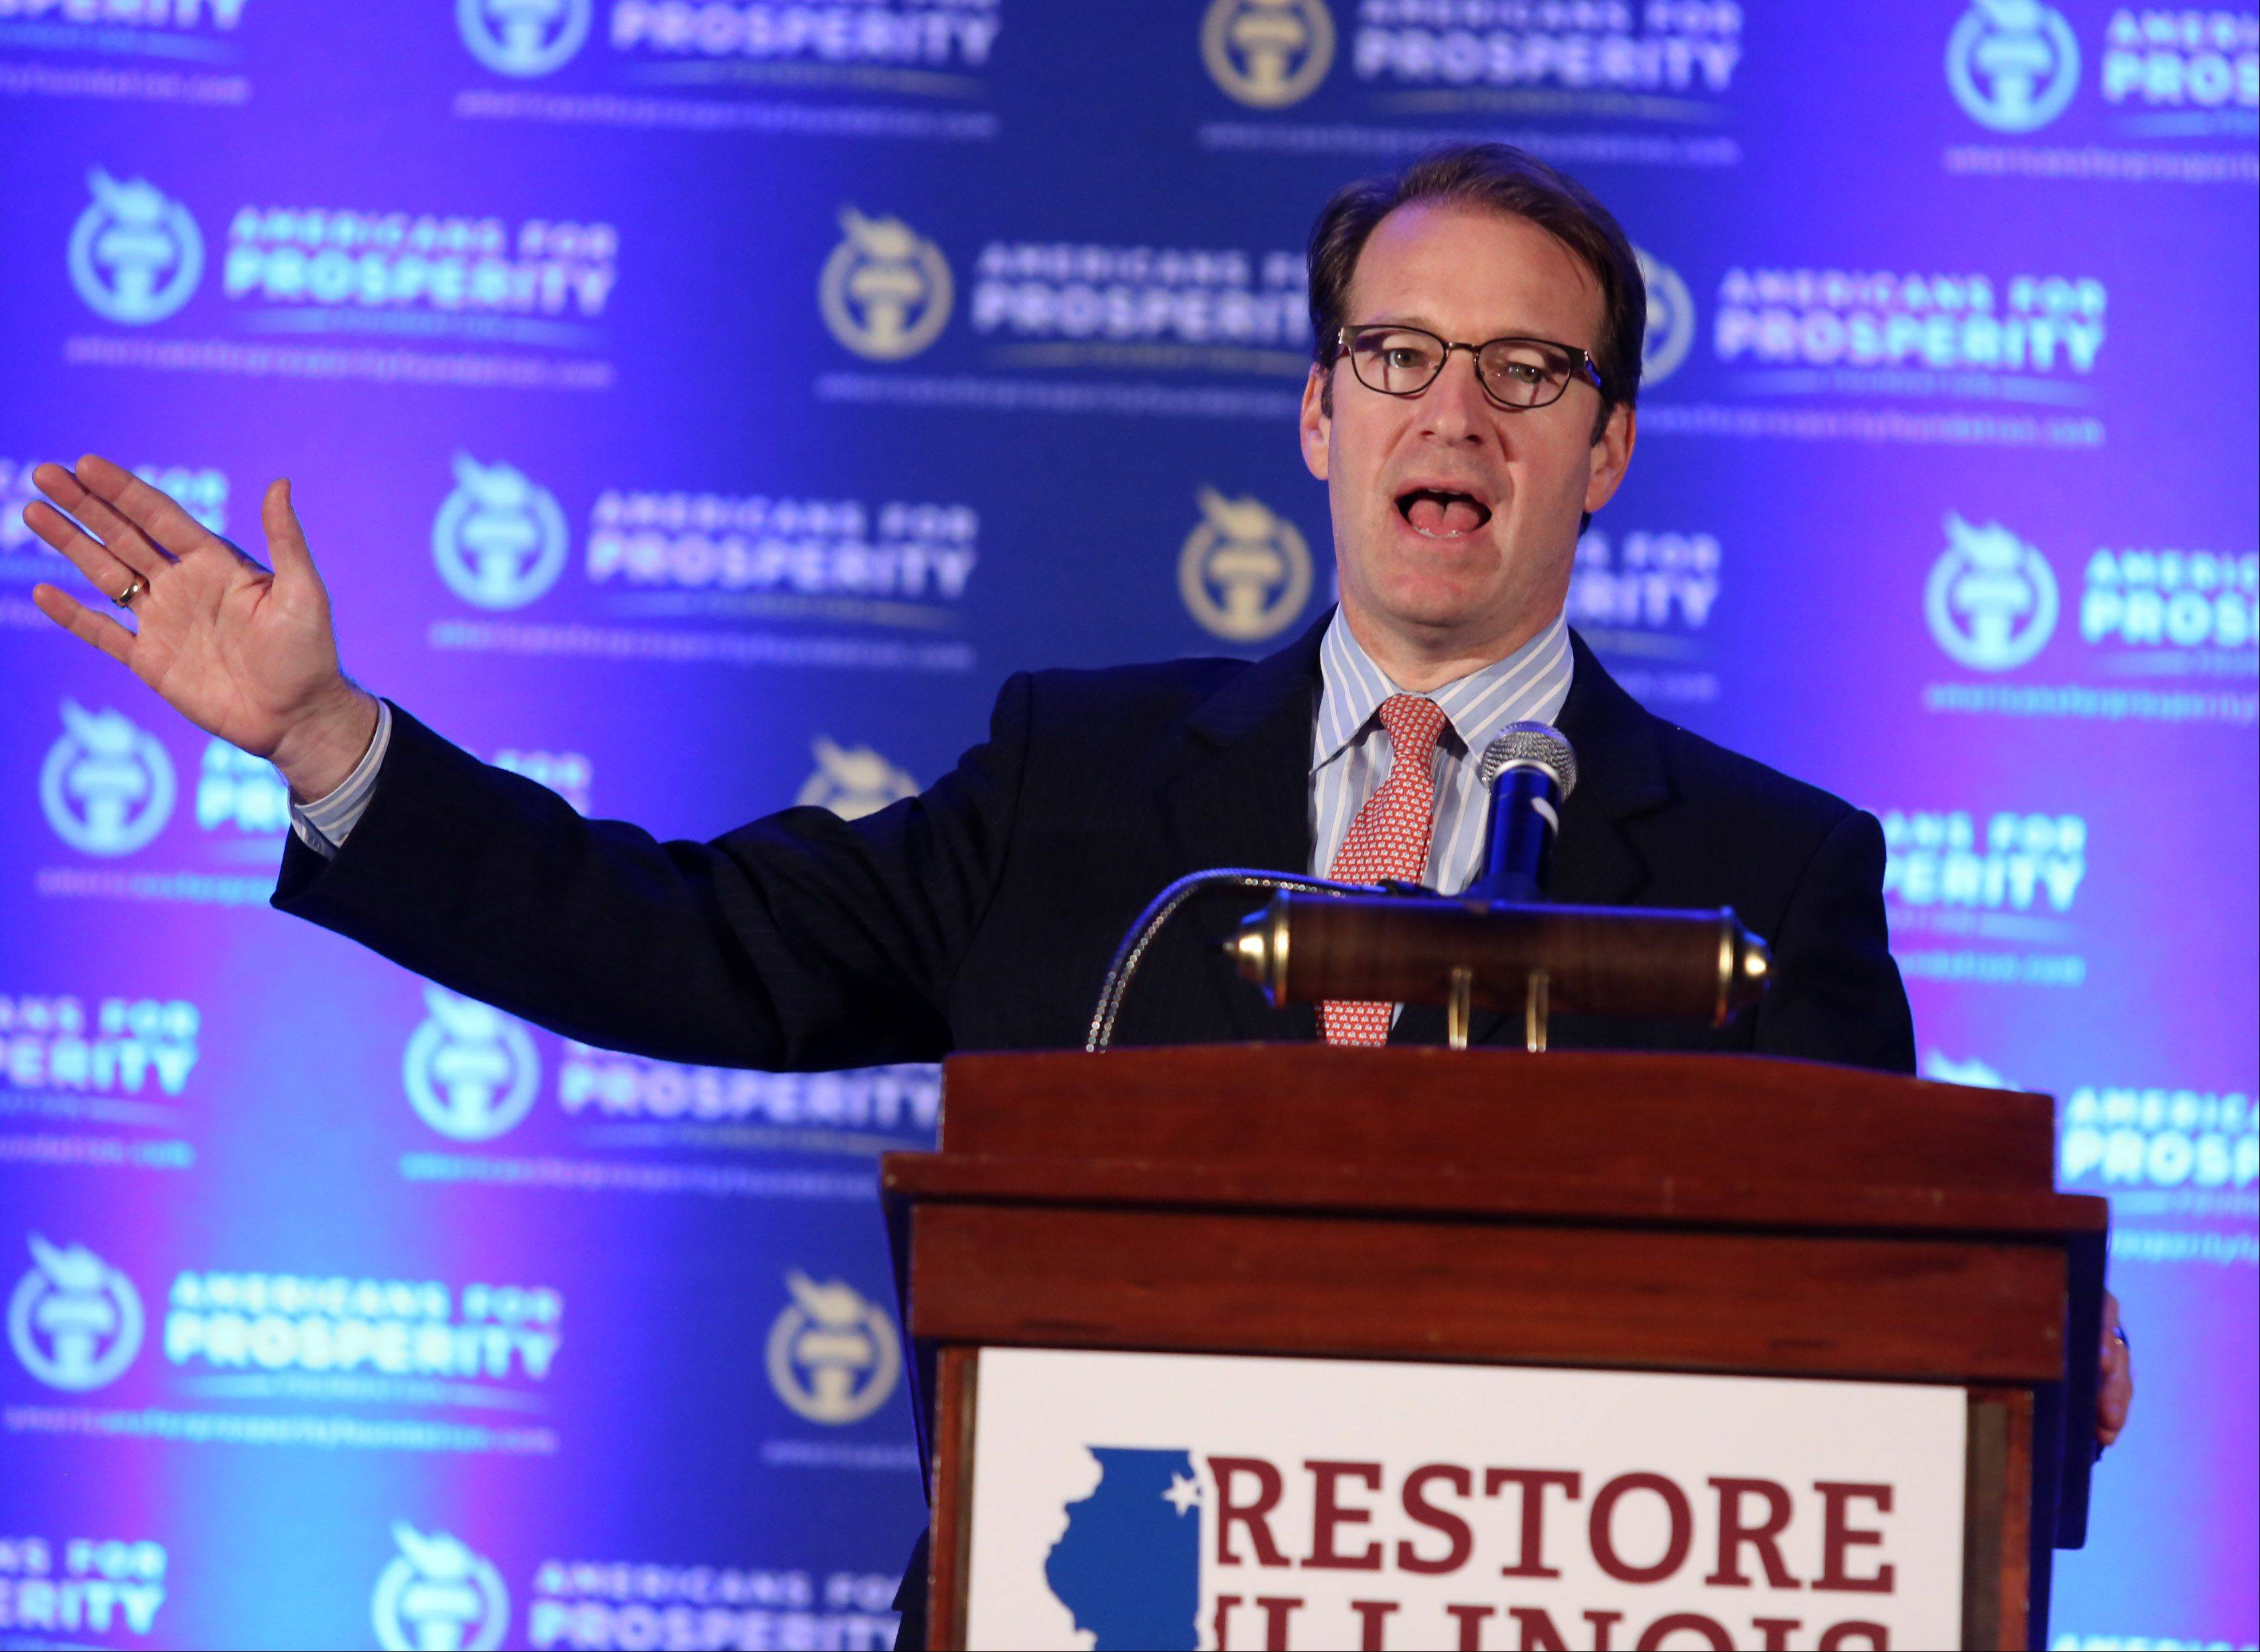 George LeClaire/gleclaire@dailyherald.comU.S. Peter Roskam of Wheaton, the chief deputy whip for Republicans, tries to rally conservatives at The Restore Illinois Summit at the Stephens Convention Center in Rosemont on Saturday.